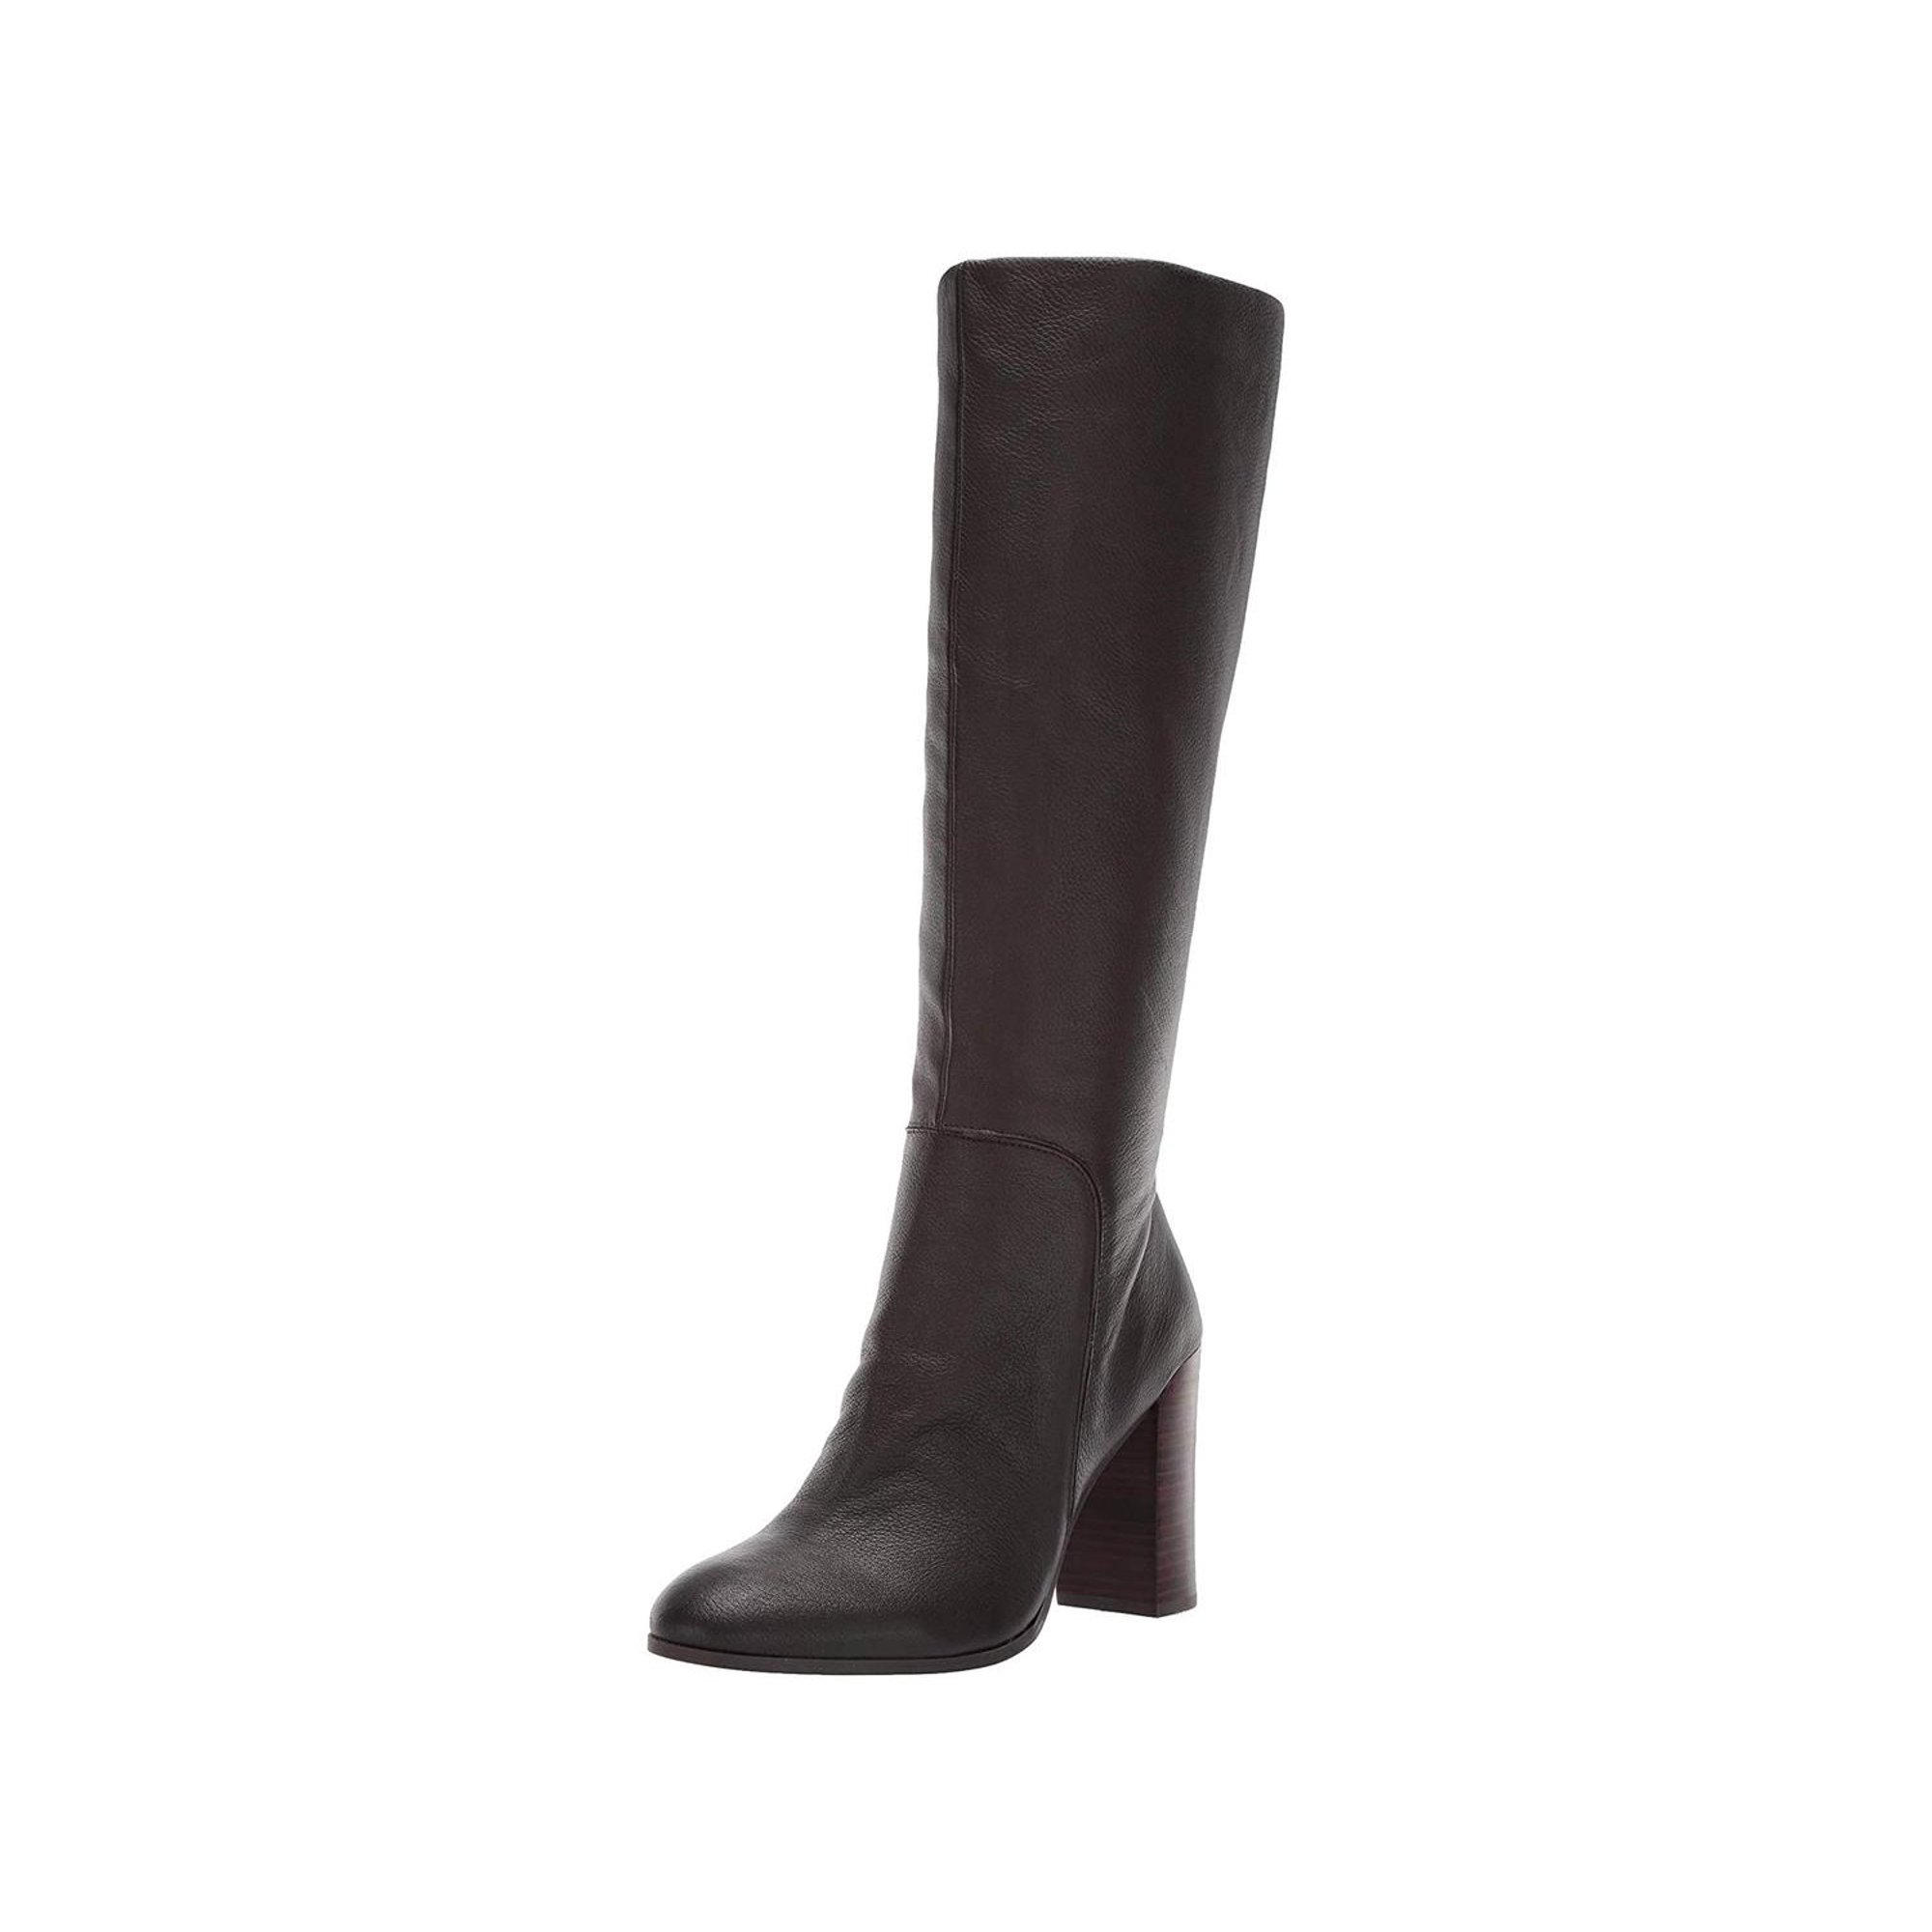 d076e263b47 Kenneth Cole New York Womens Justin Leather Almond Toe Knee